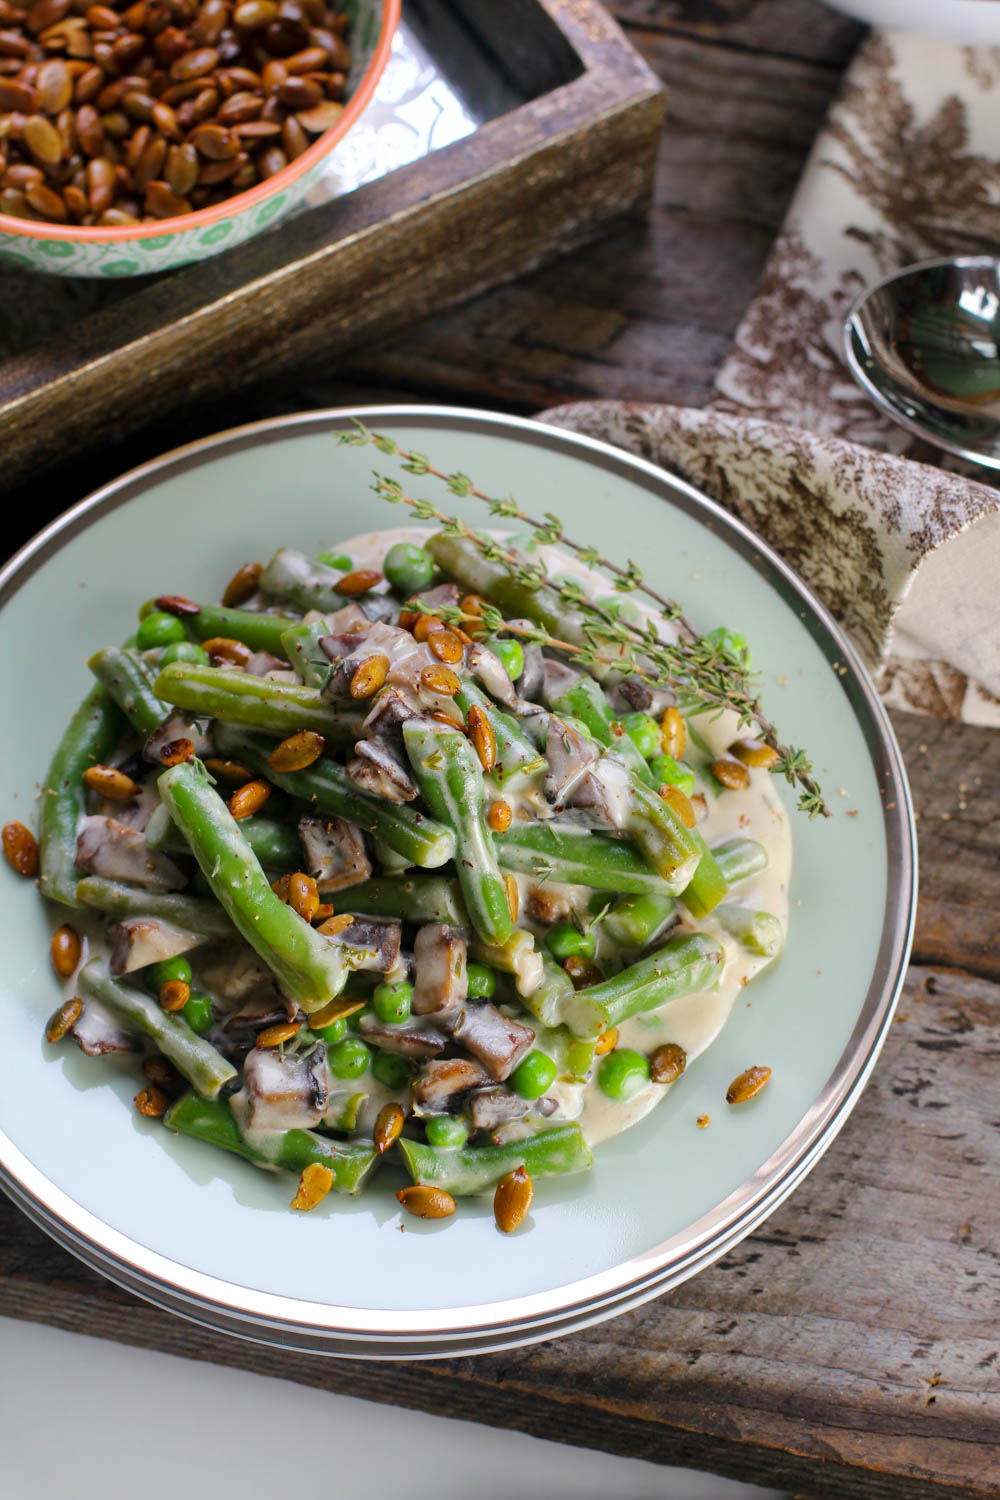 Thanksgiving Recipe: Green Beans With Homemade Cream of Mushroom Sauce | PainDoctor.com